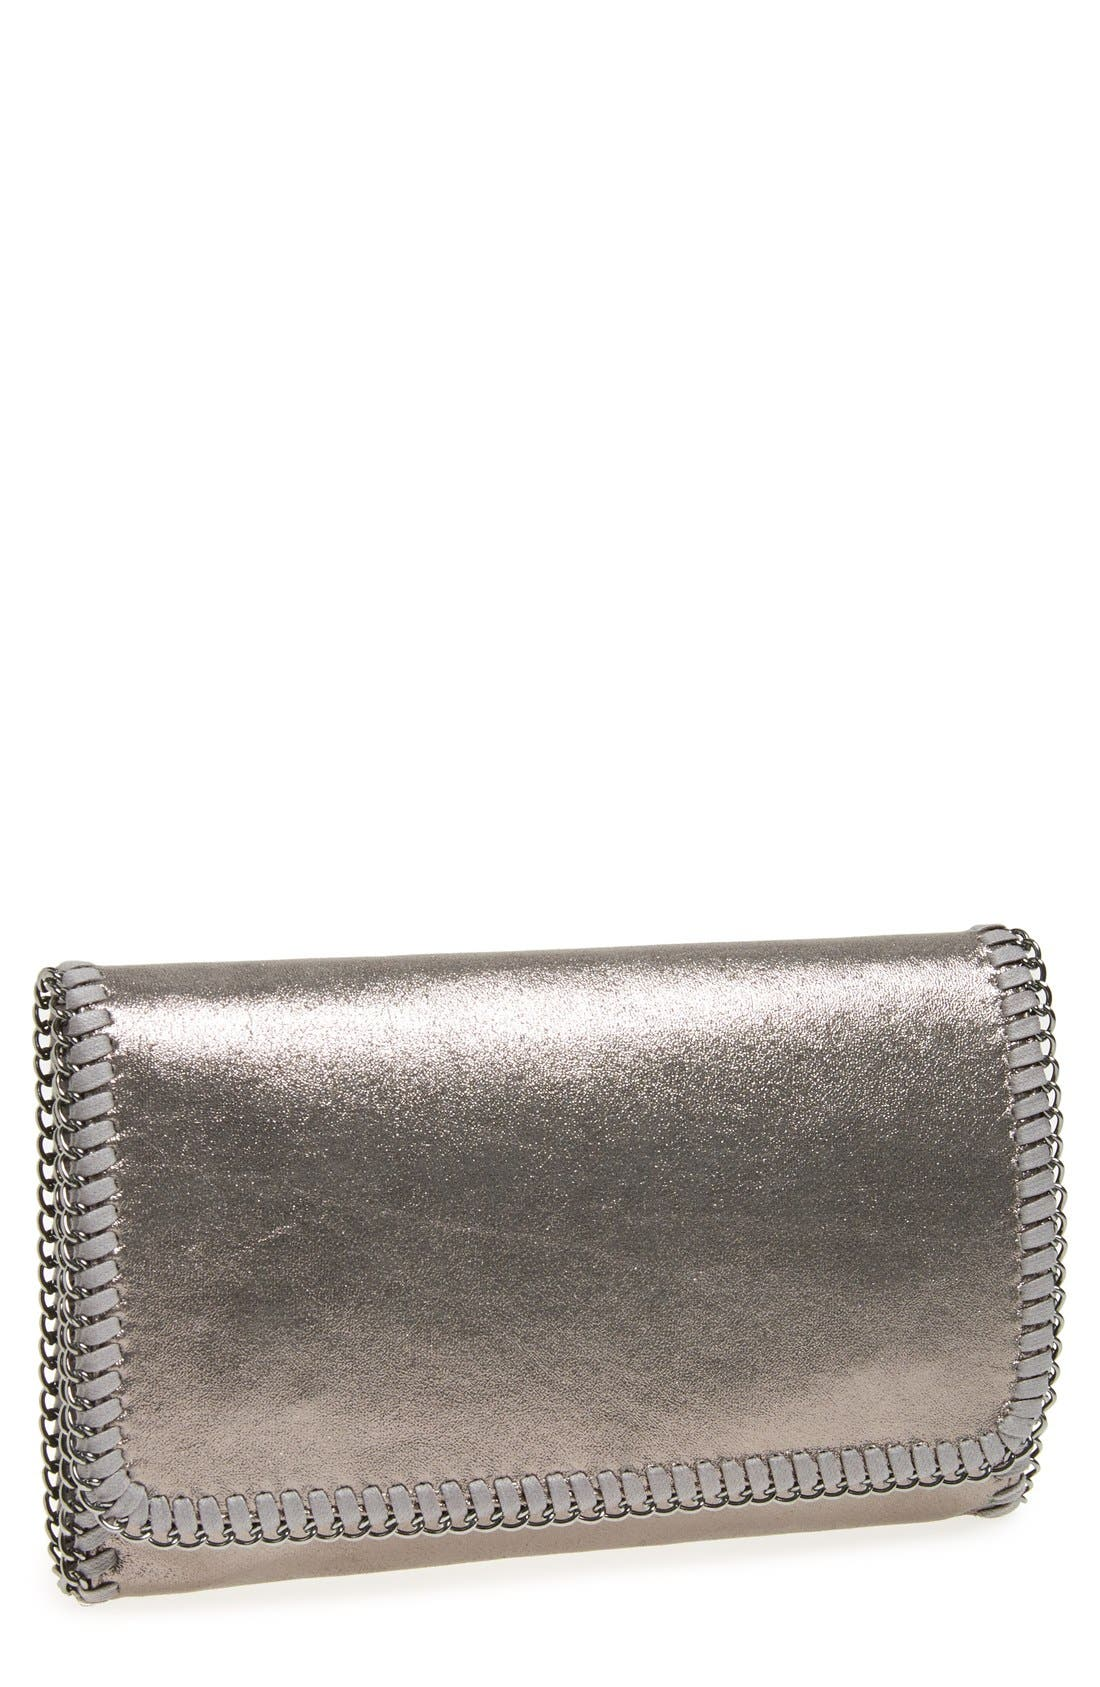 Main Image - Phase 3 'Metallic Chain' Foldover Clutch